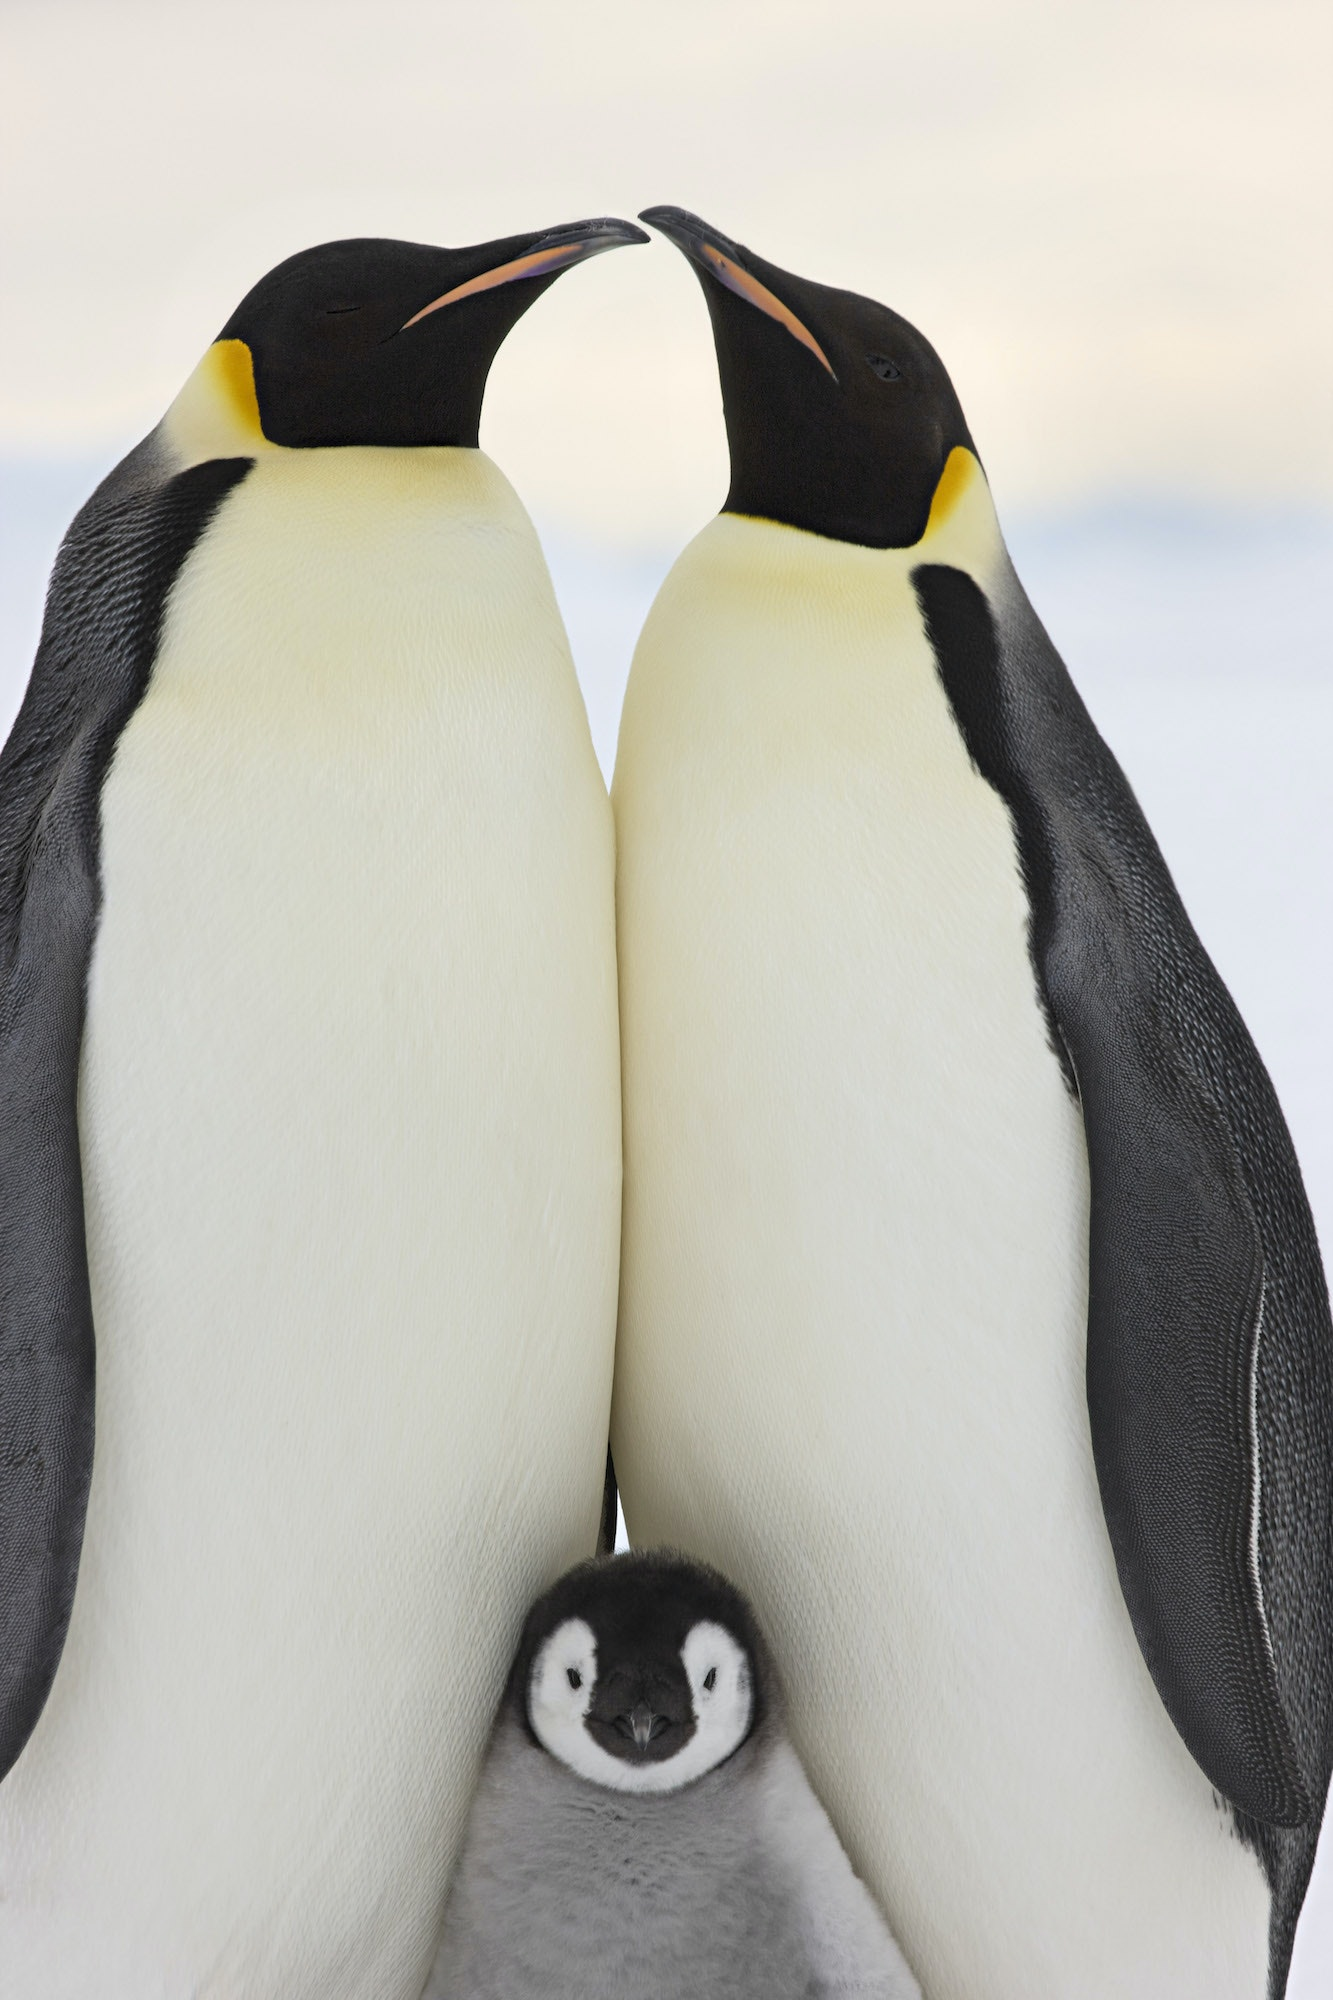 Emperor penguins huddle in groups to keep themselves—and each other—warm.